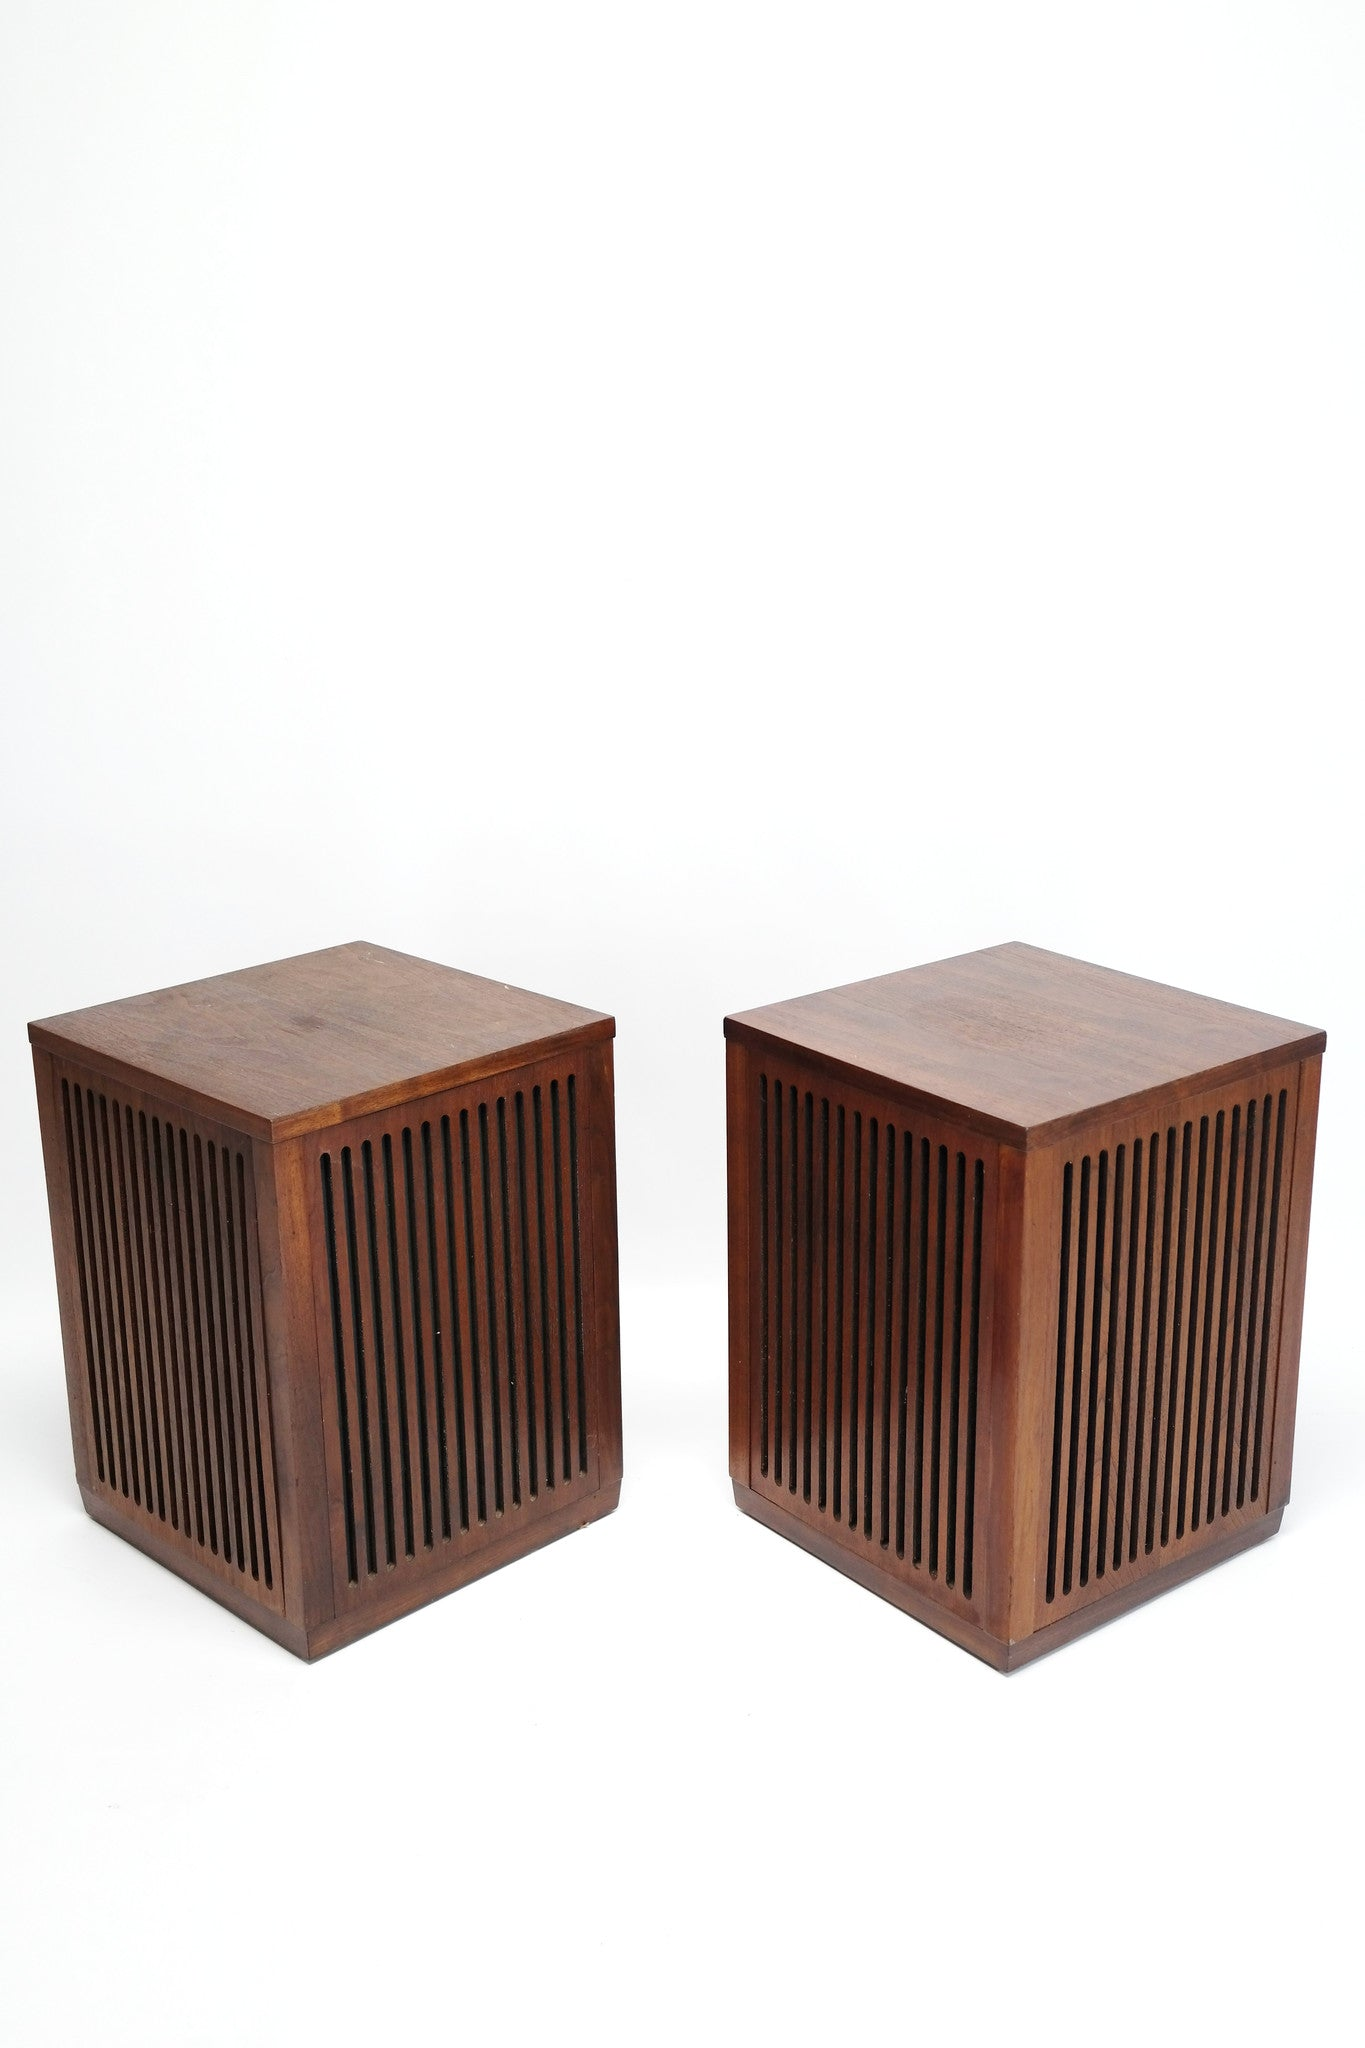 Sold Mid Century Modern Cube Wood Speakers S2 The Vintedge Co